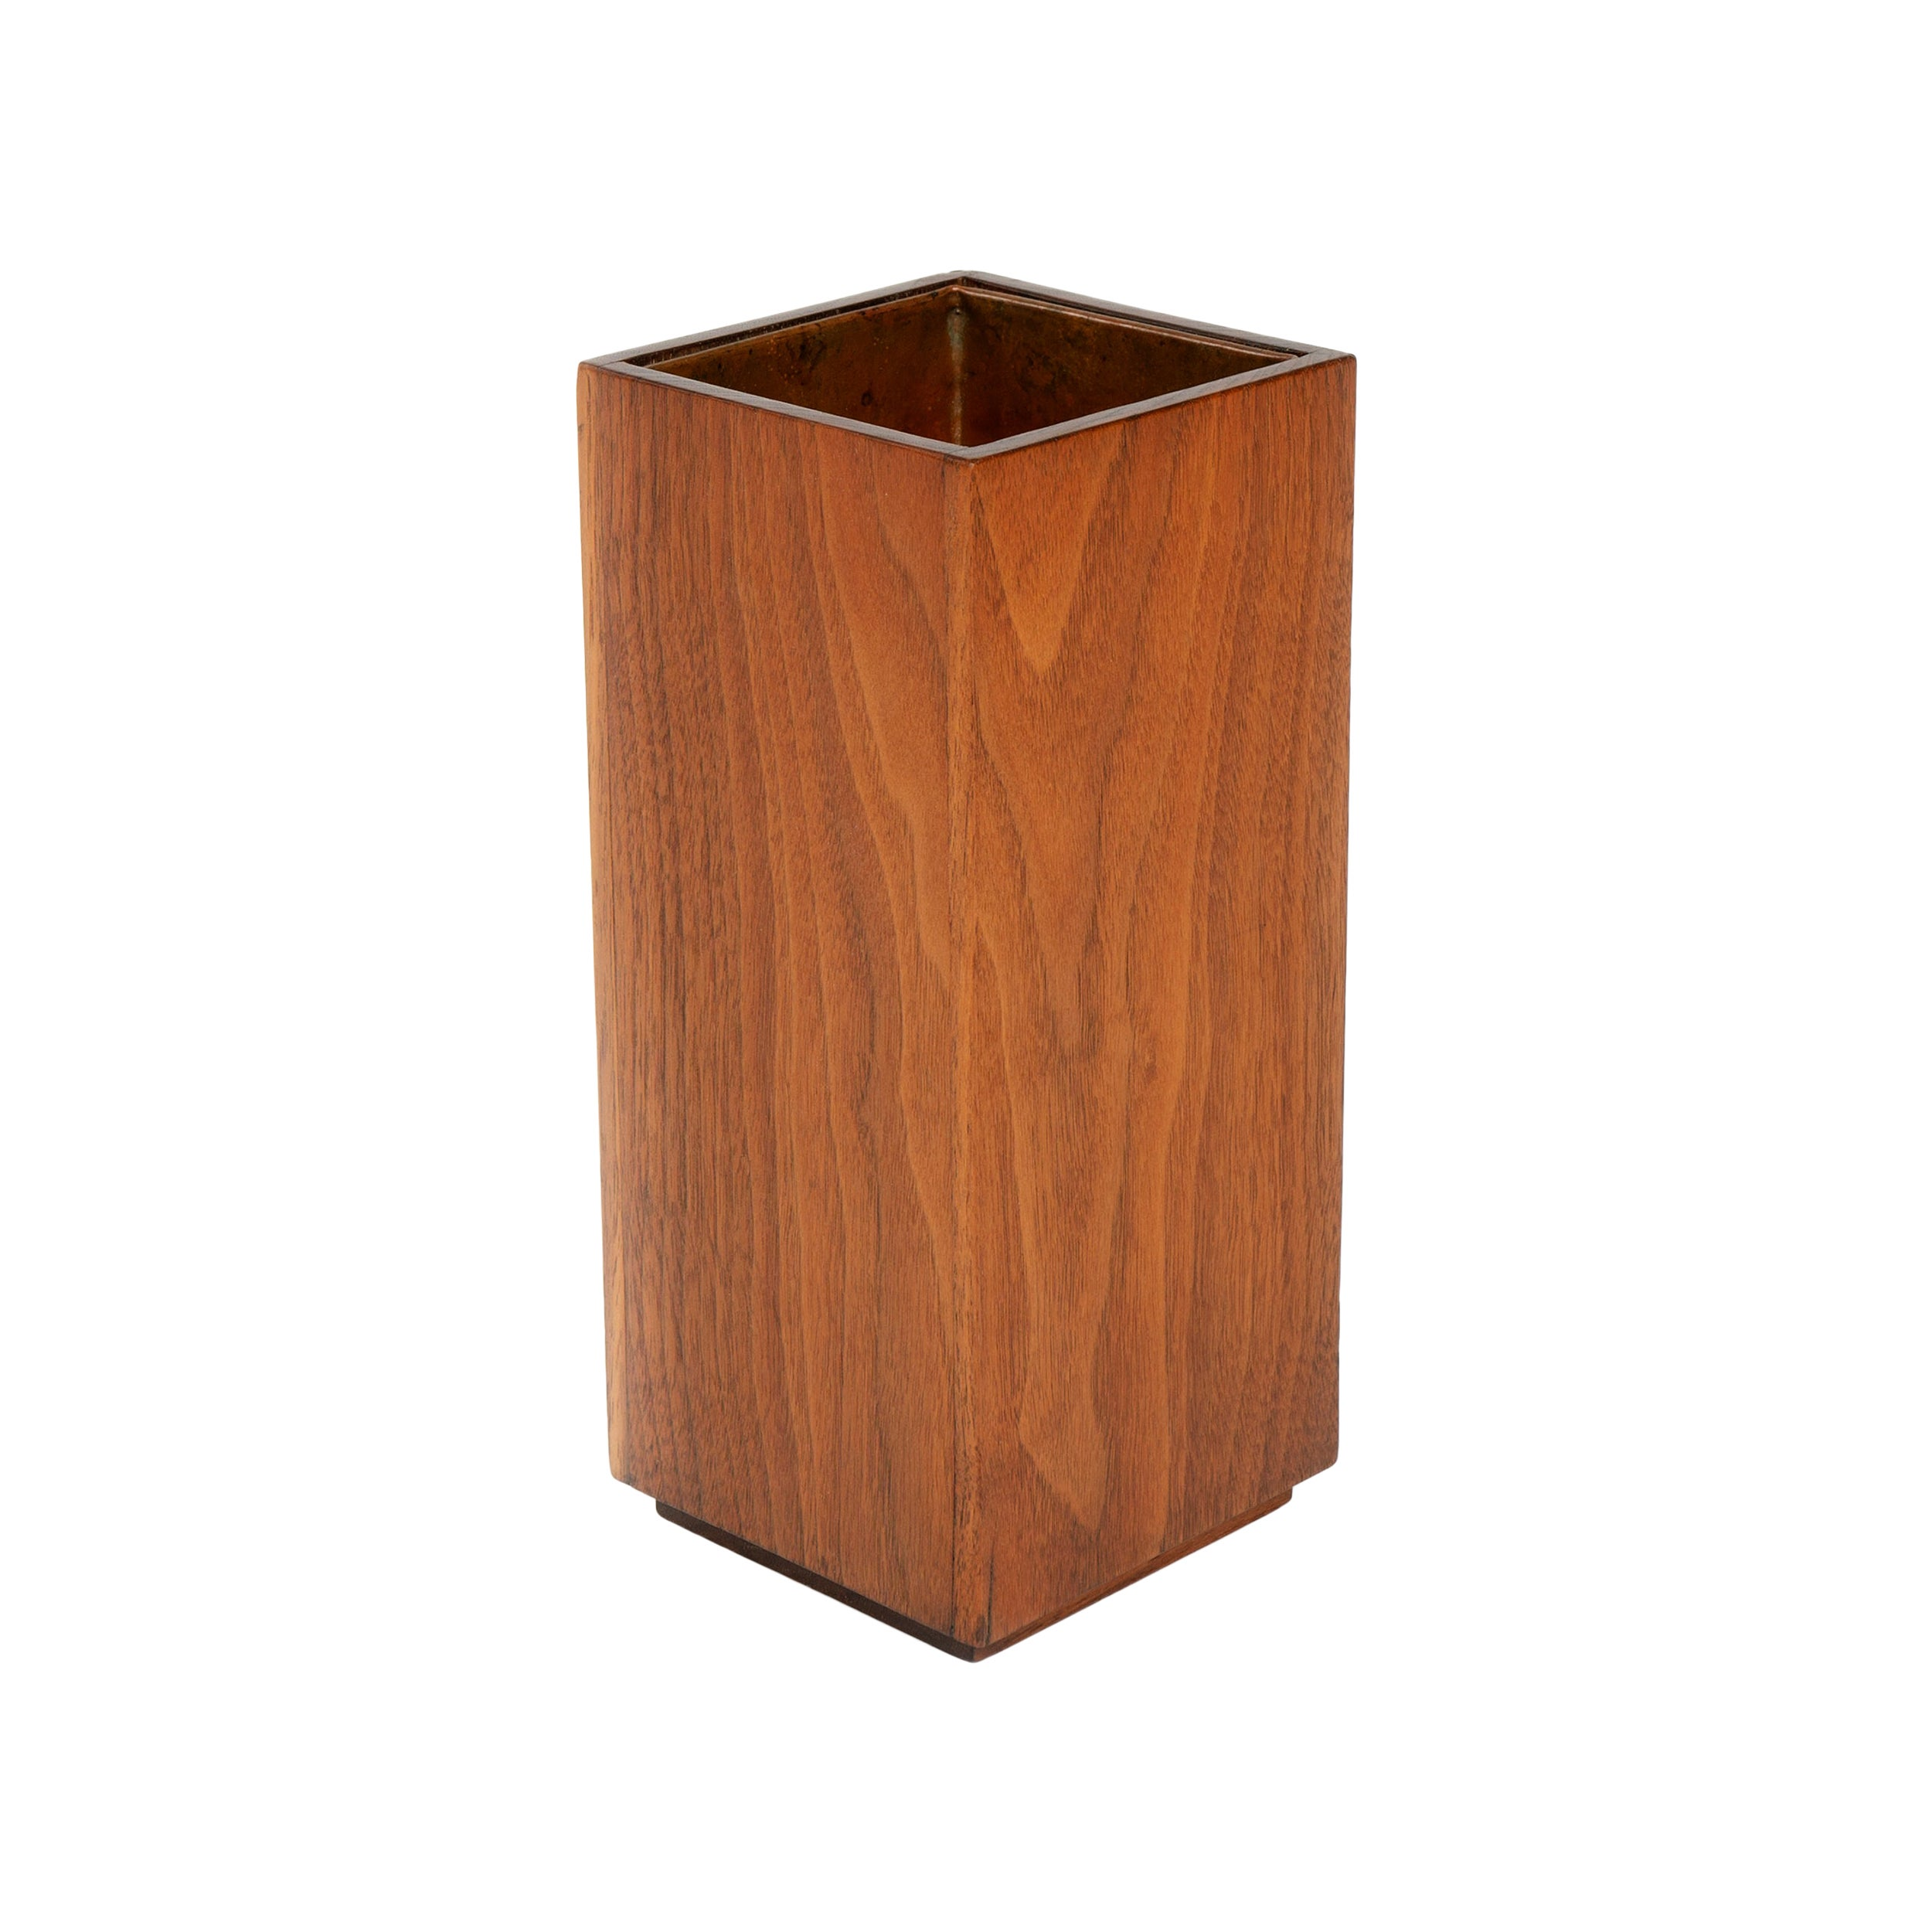 1950s Wood Planter or Vase by James Prestini